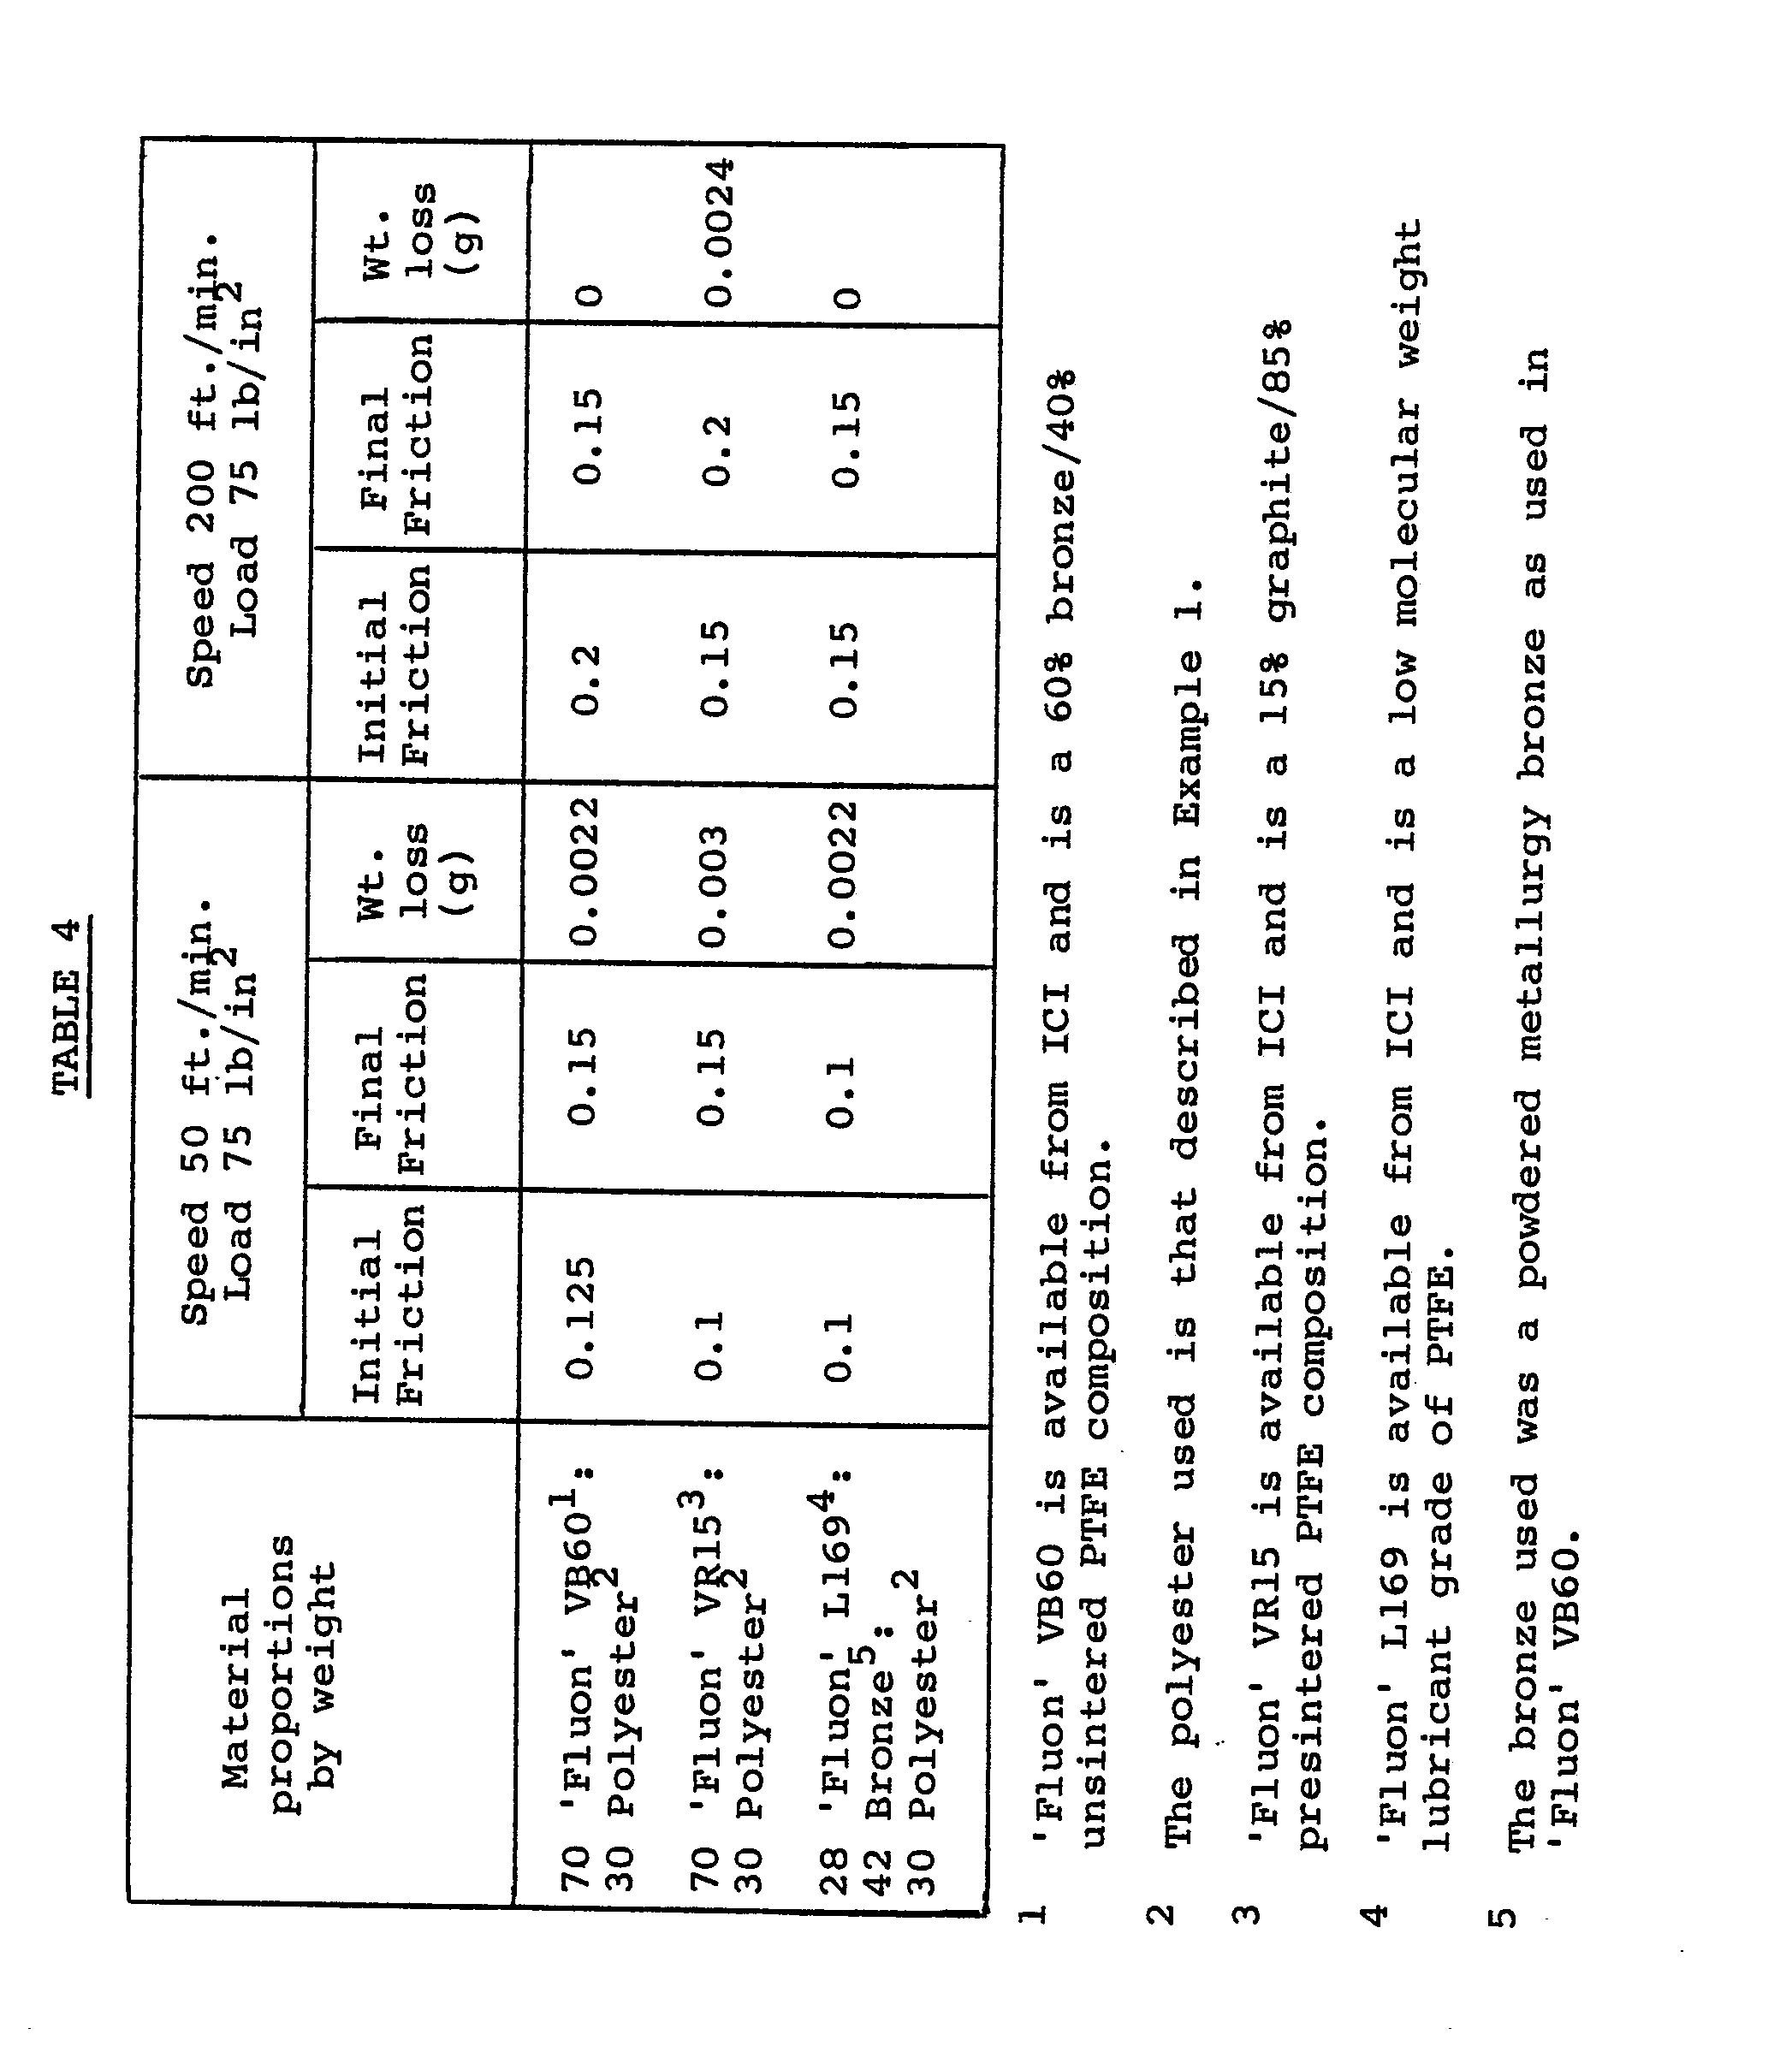 EP0051933A2 - PTFE compositions containing anisotropic melt-forming